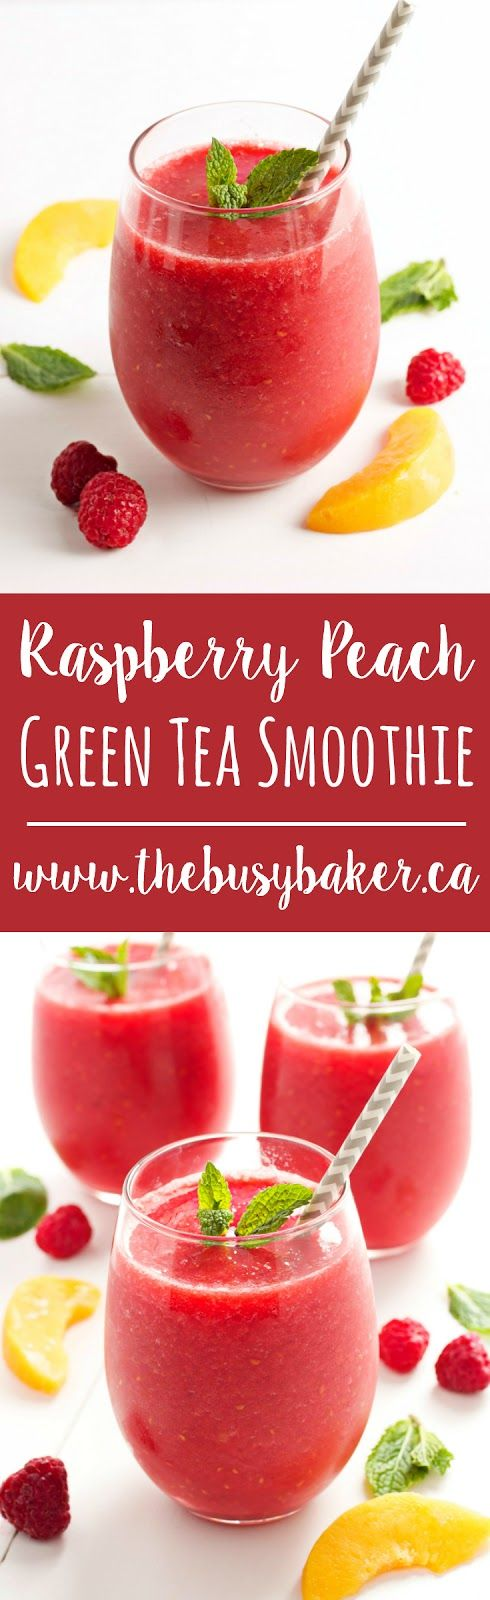 Raspberry Peach Green Tea Smoothie www.thebusybaker.ca